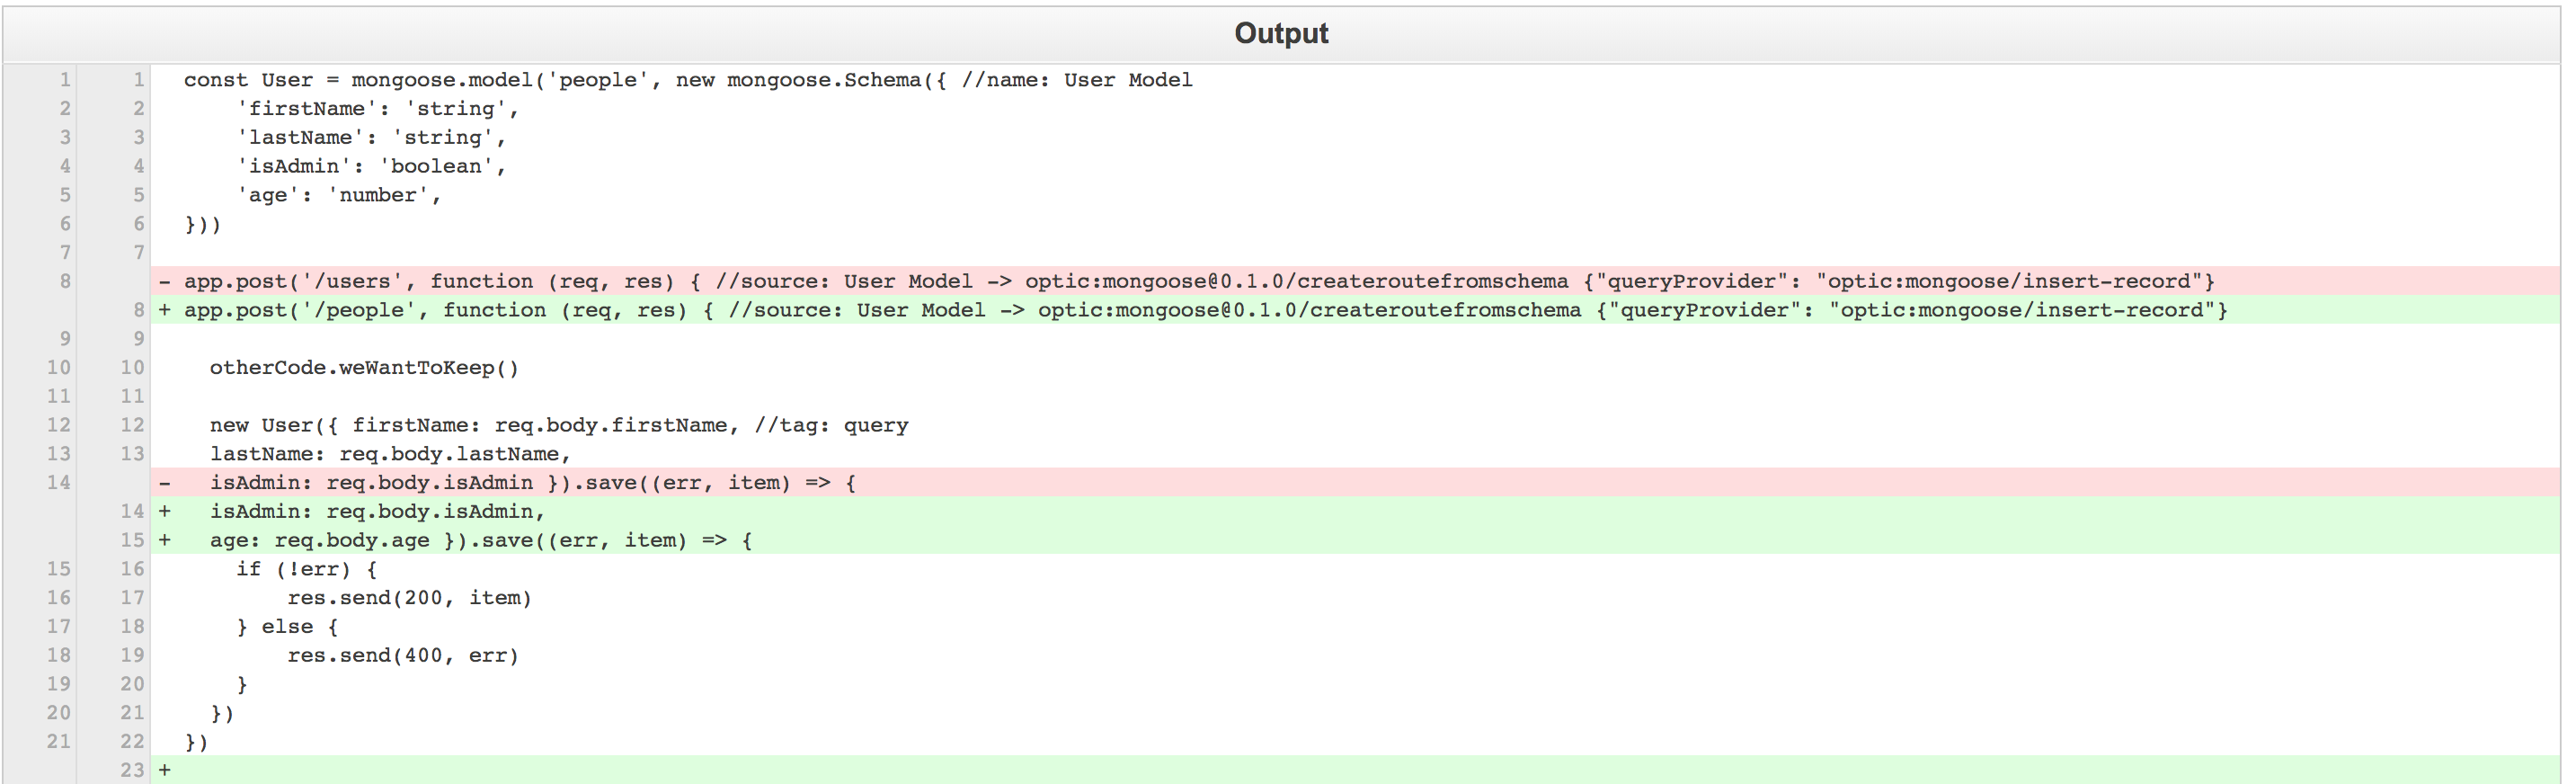 Here's a look at the Pull Request Optic generated for this file after you changed the model